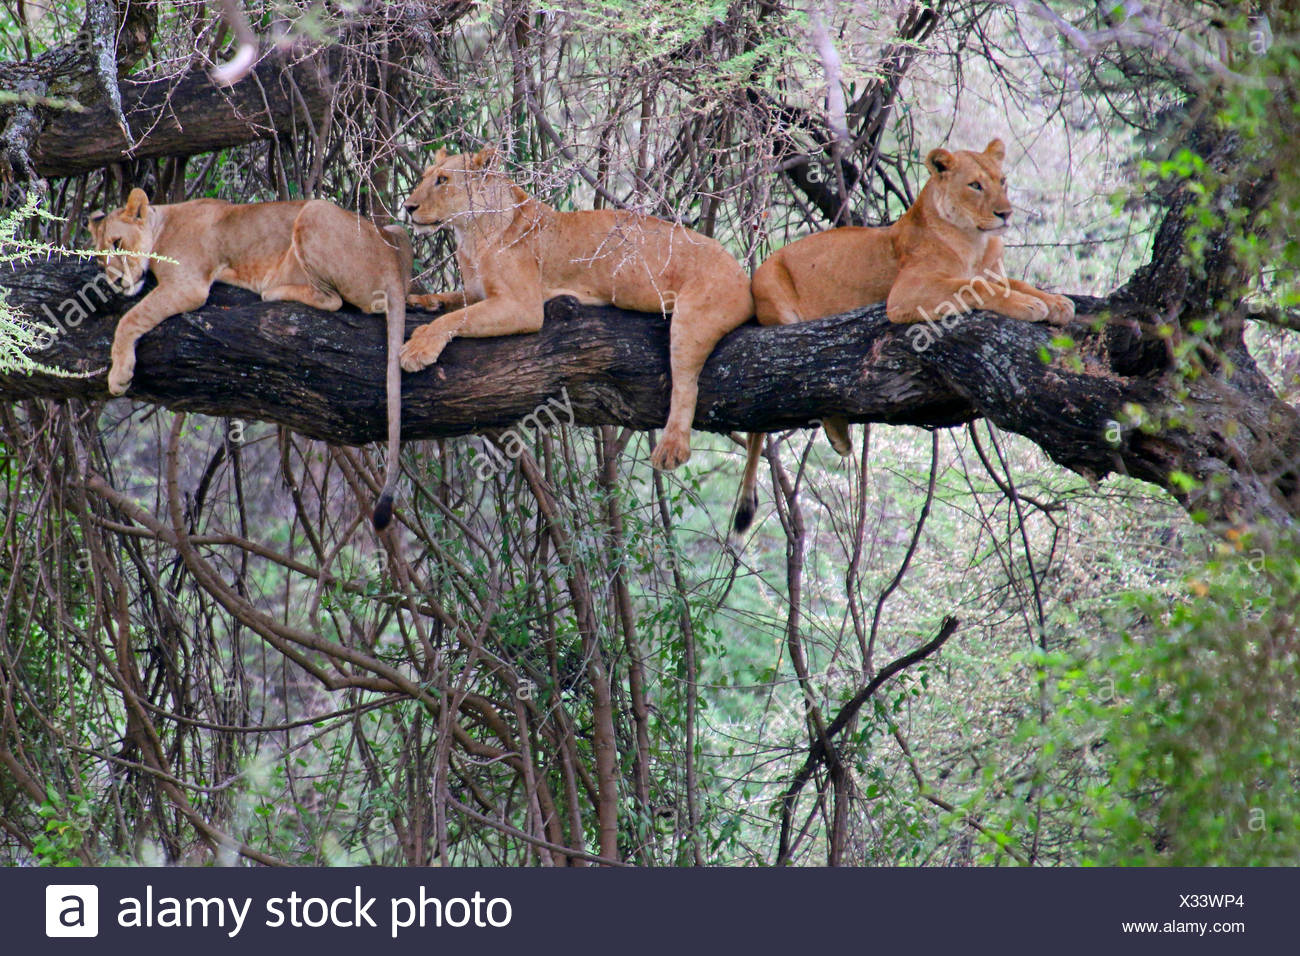 lion (Panthera leo), three lions lying together on a tree, Tanzania, Lake Manyara National Park - Stock Image